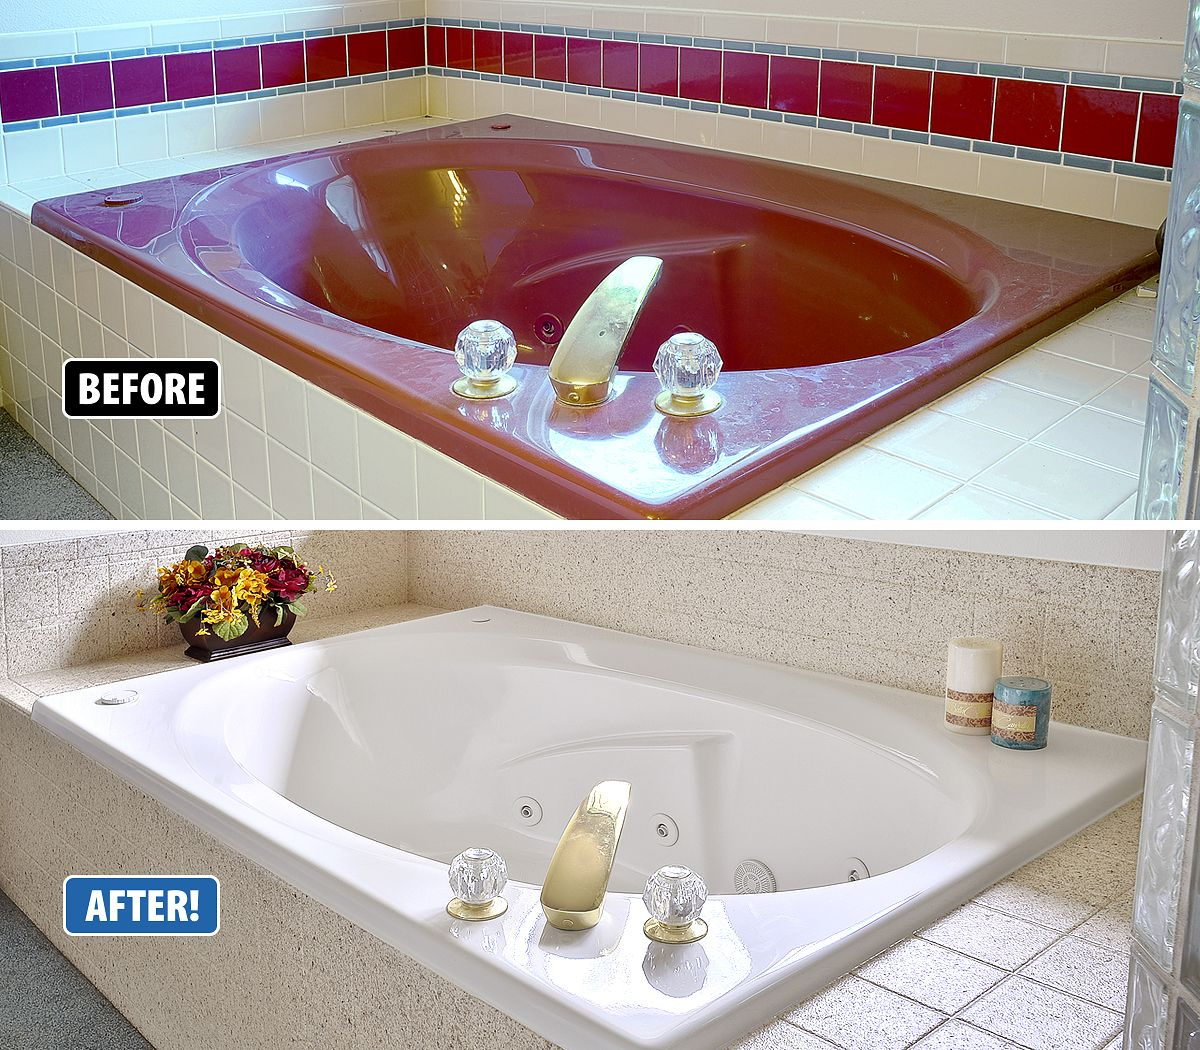 Bathtub Refinishing Tub Refinishing Tub Remodel Refinish Bathtub